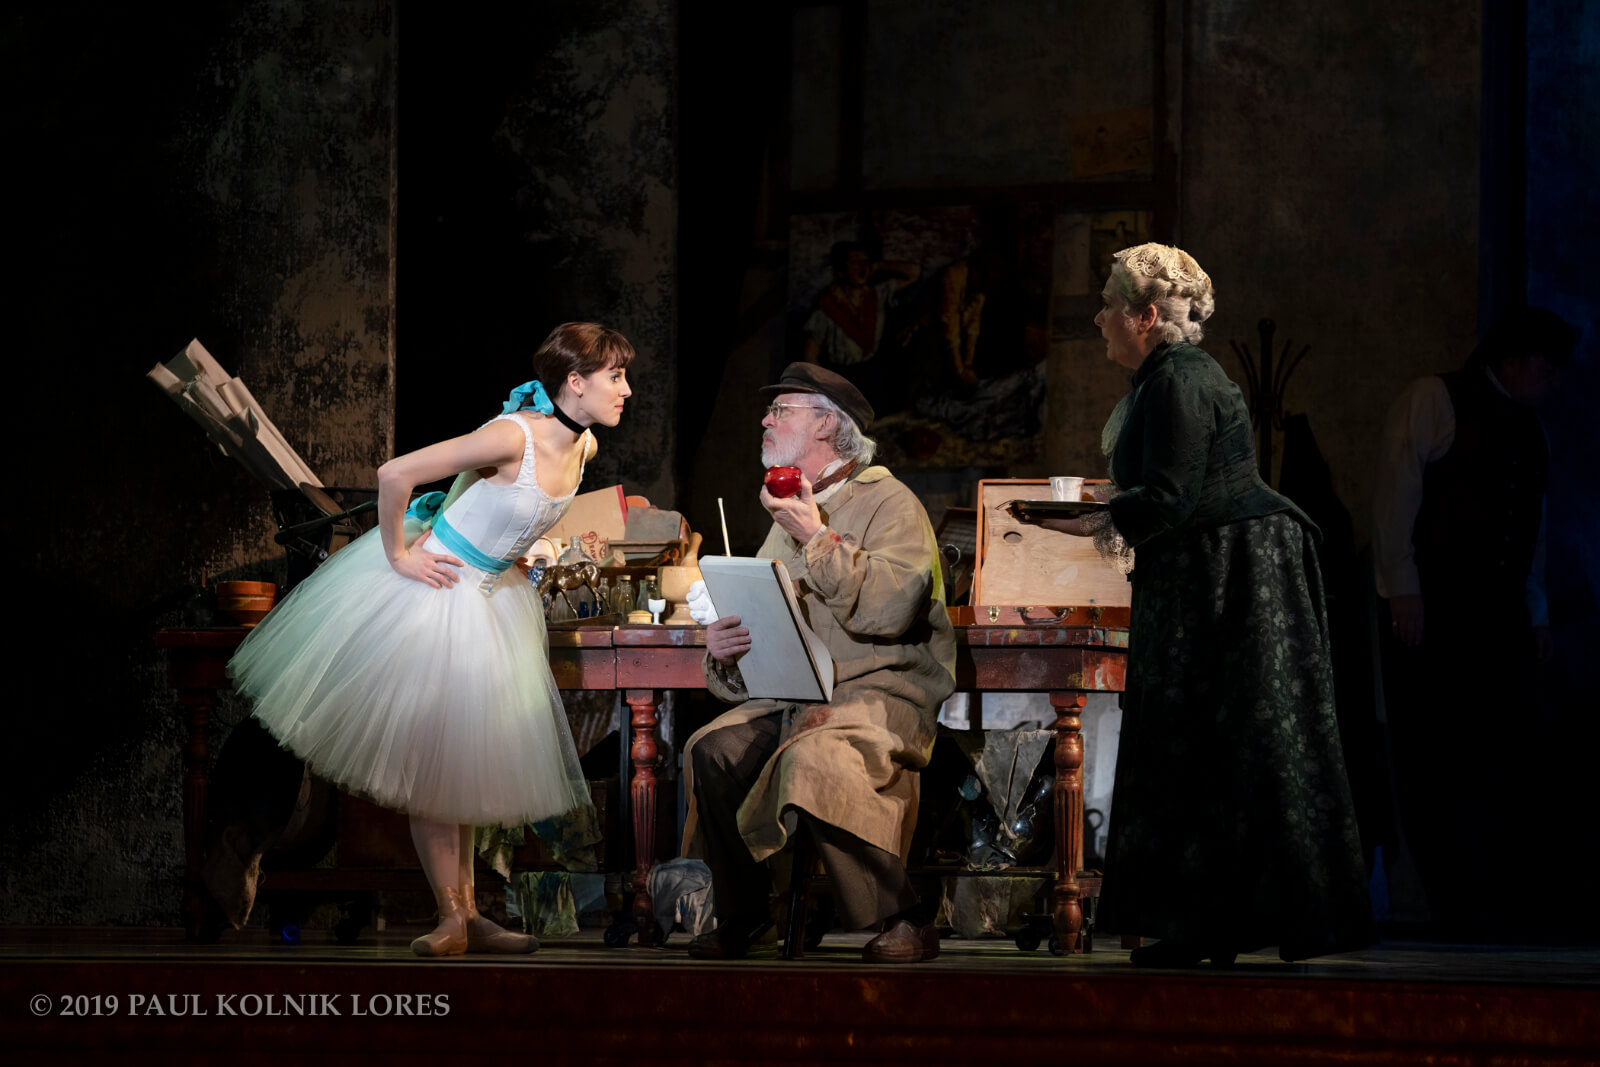 Marie (Tiler Peck) about to steal an apple from Degas (Terrence Mann). Barbara Marineau looks on.